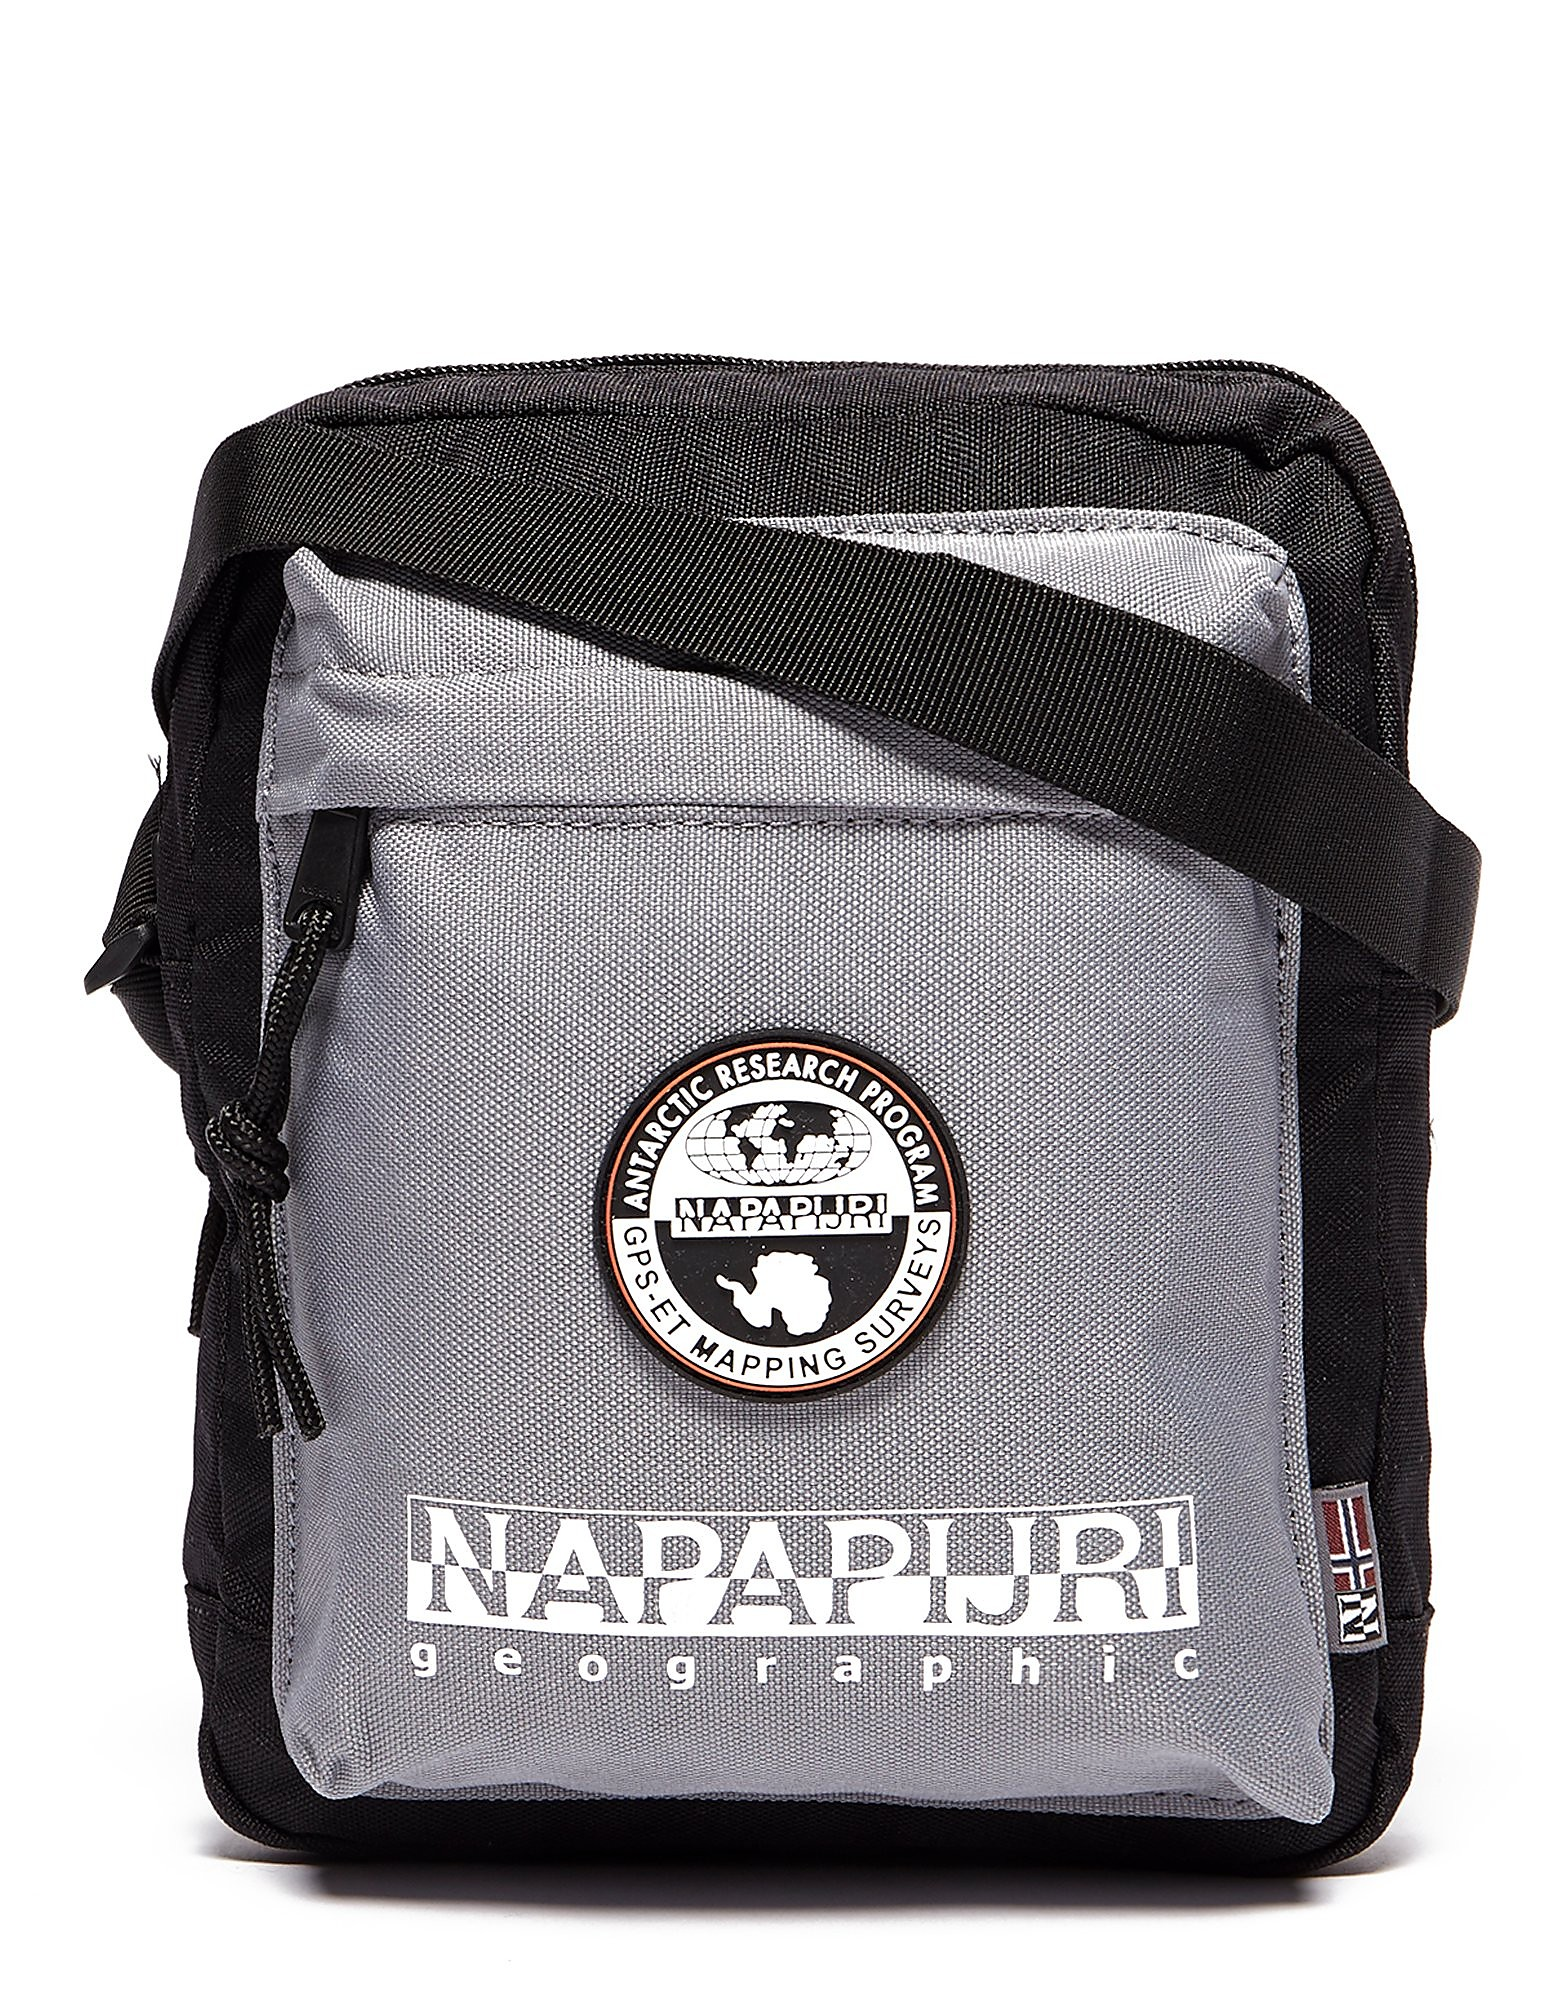 Napapijri Happy Cross Body Borsellino